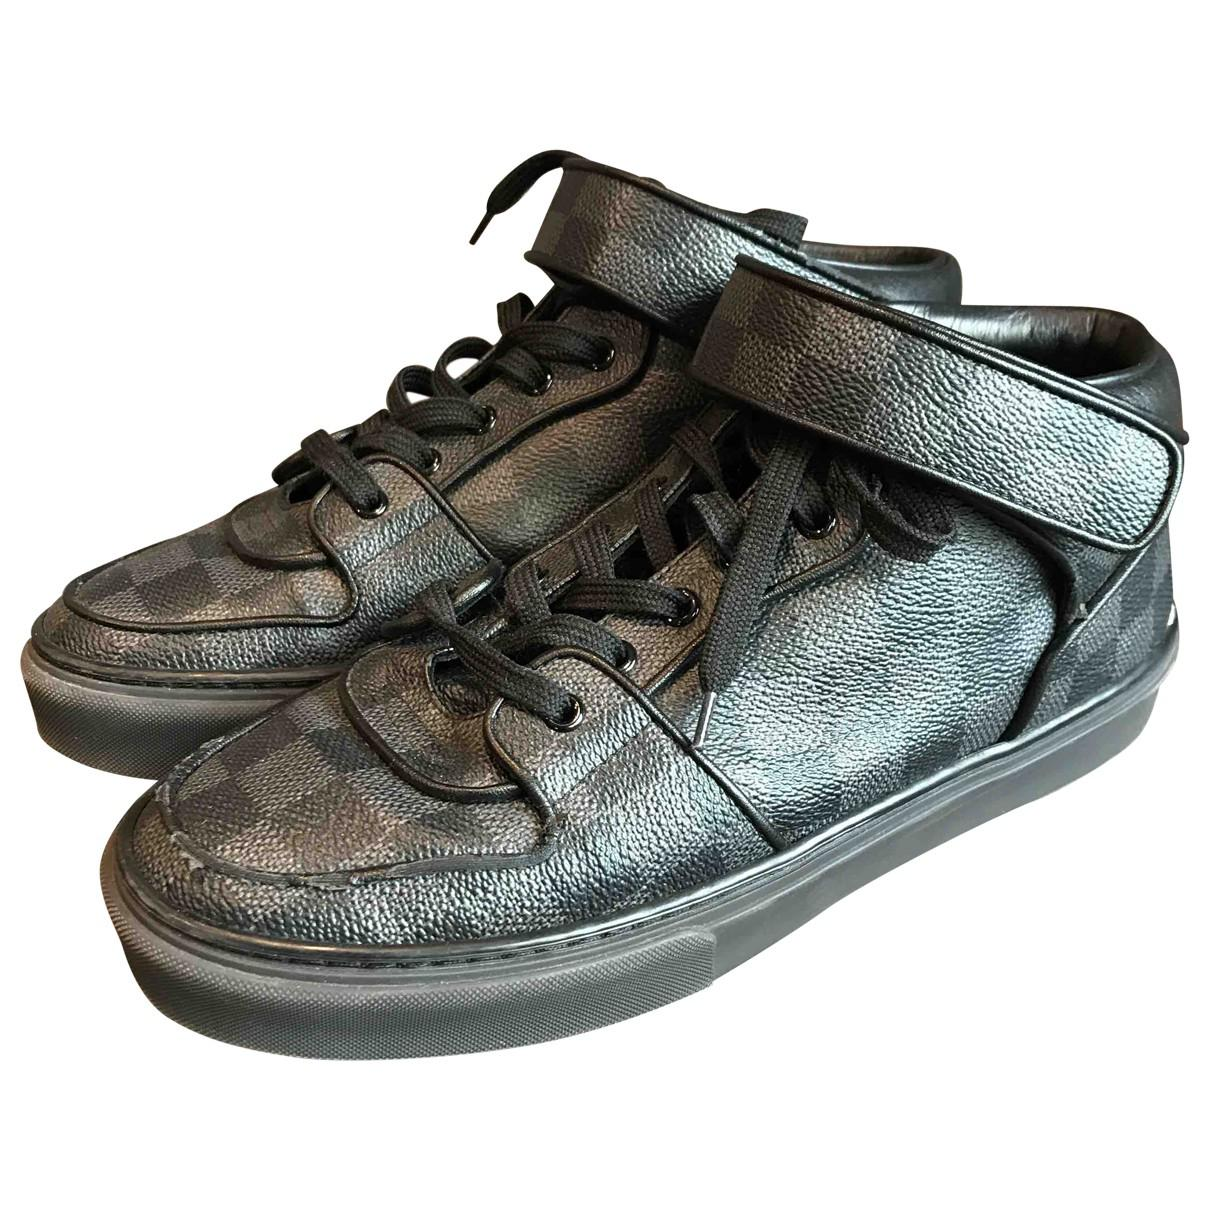 Pre-owned - Cloth trainers Louis Vuitton MF2iaJgDvm